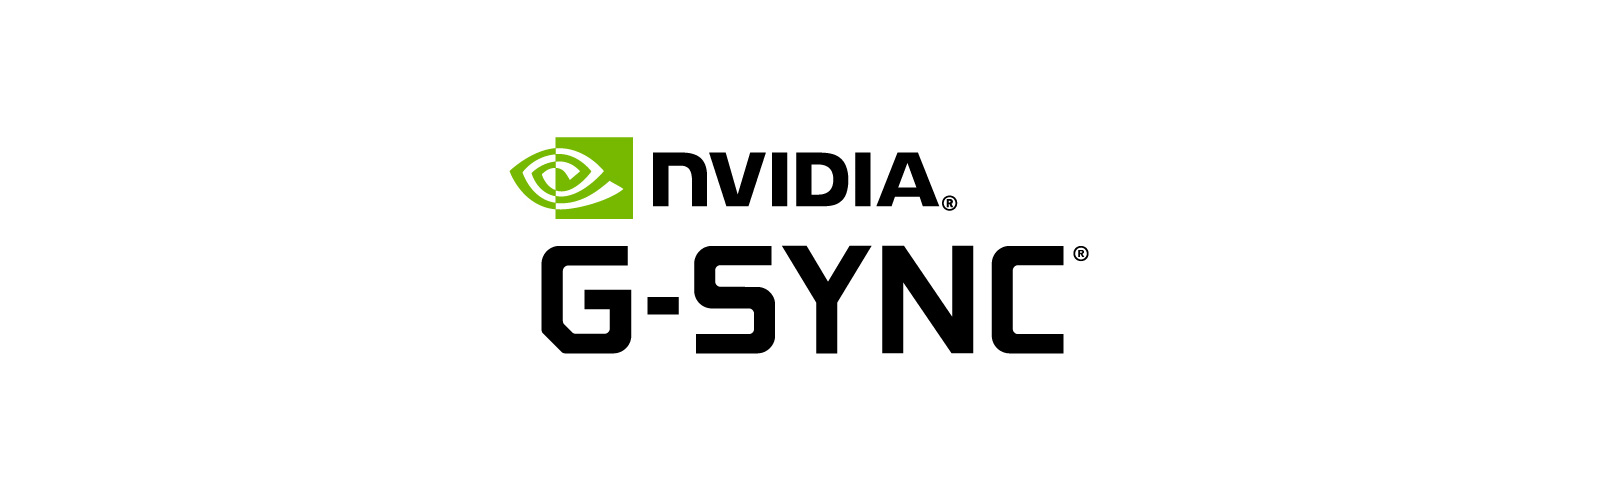 NVIDIA adds 7 new FreeSync monitors that are G-Sync Compatible